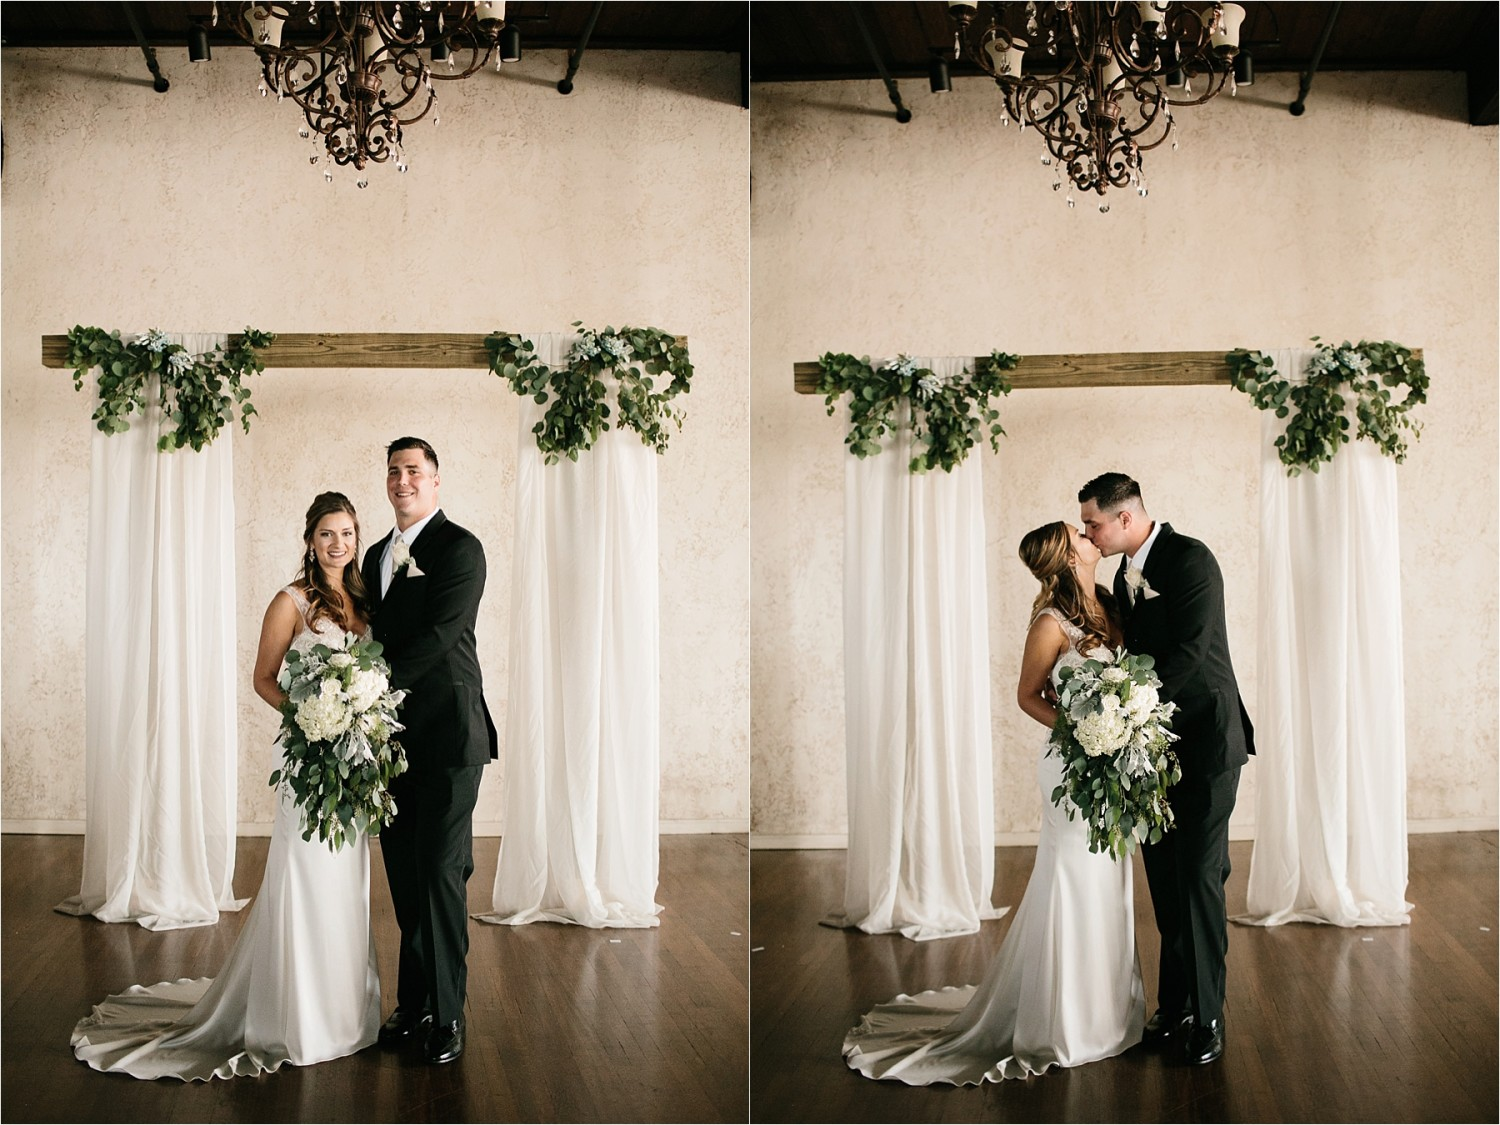 Holly + Jordan __ a black, gold, and greenery organic wedding at The Phoenix Ballroom in Waco, TX by North Texas Wedding Photographer Rachel Meagan Photography __ 57